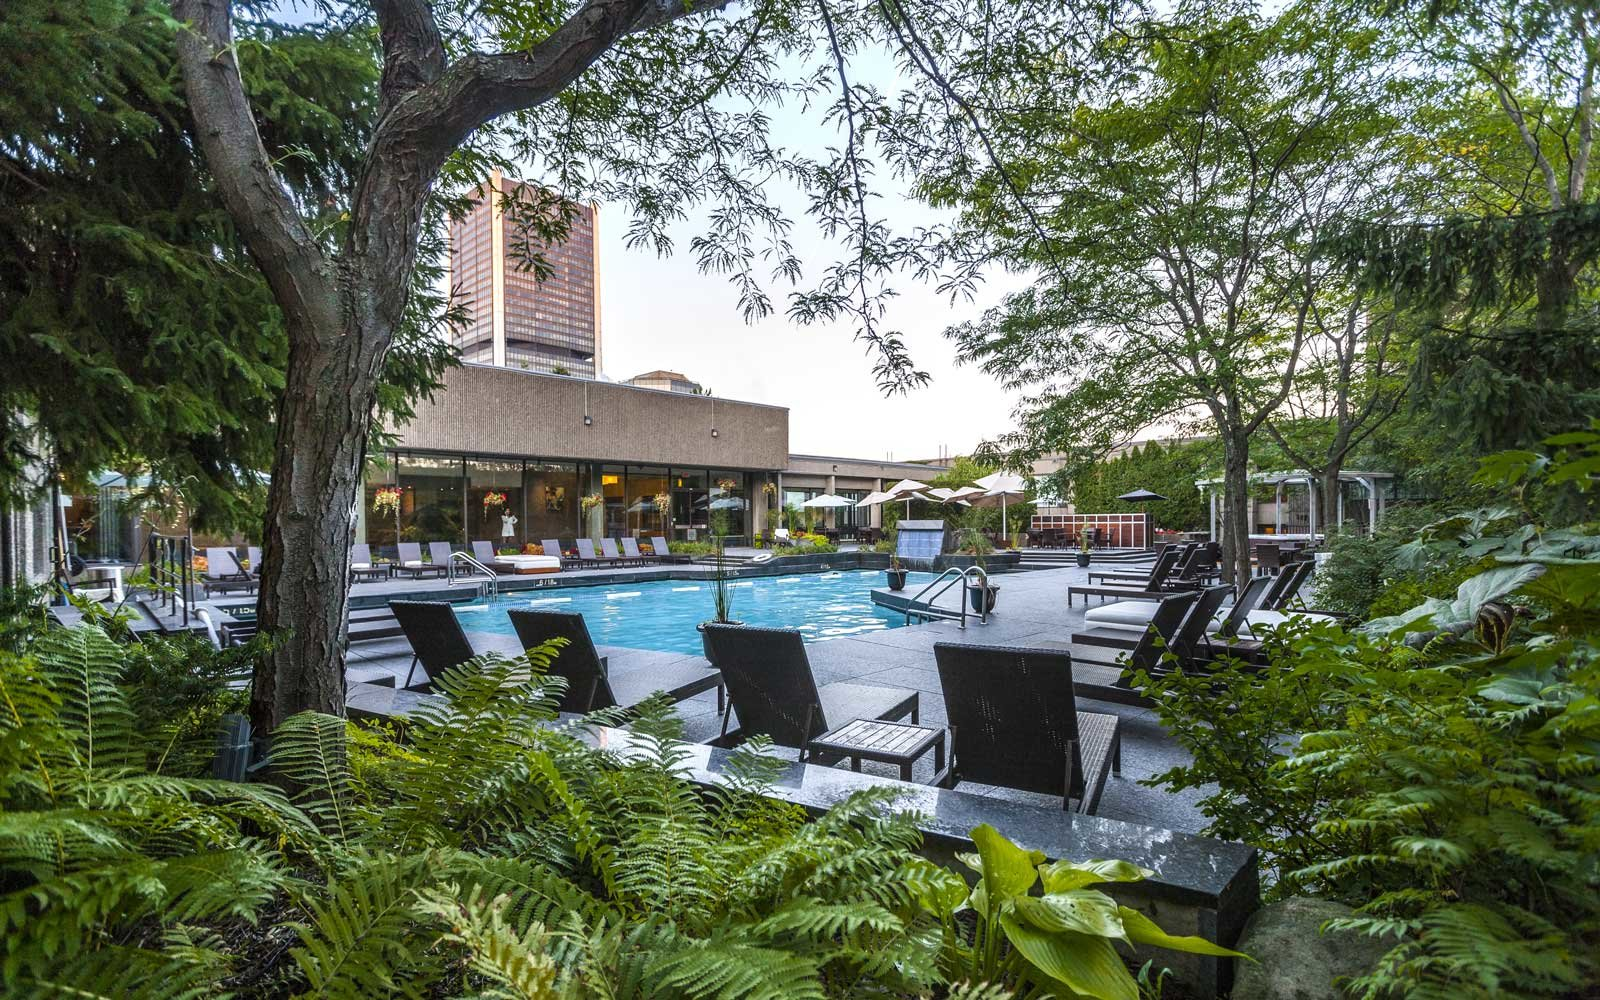 View of the pool at the Hotel Bonaventure in Montreal, Canada